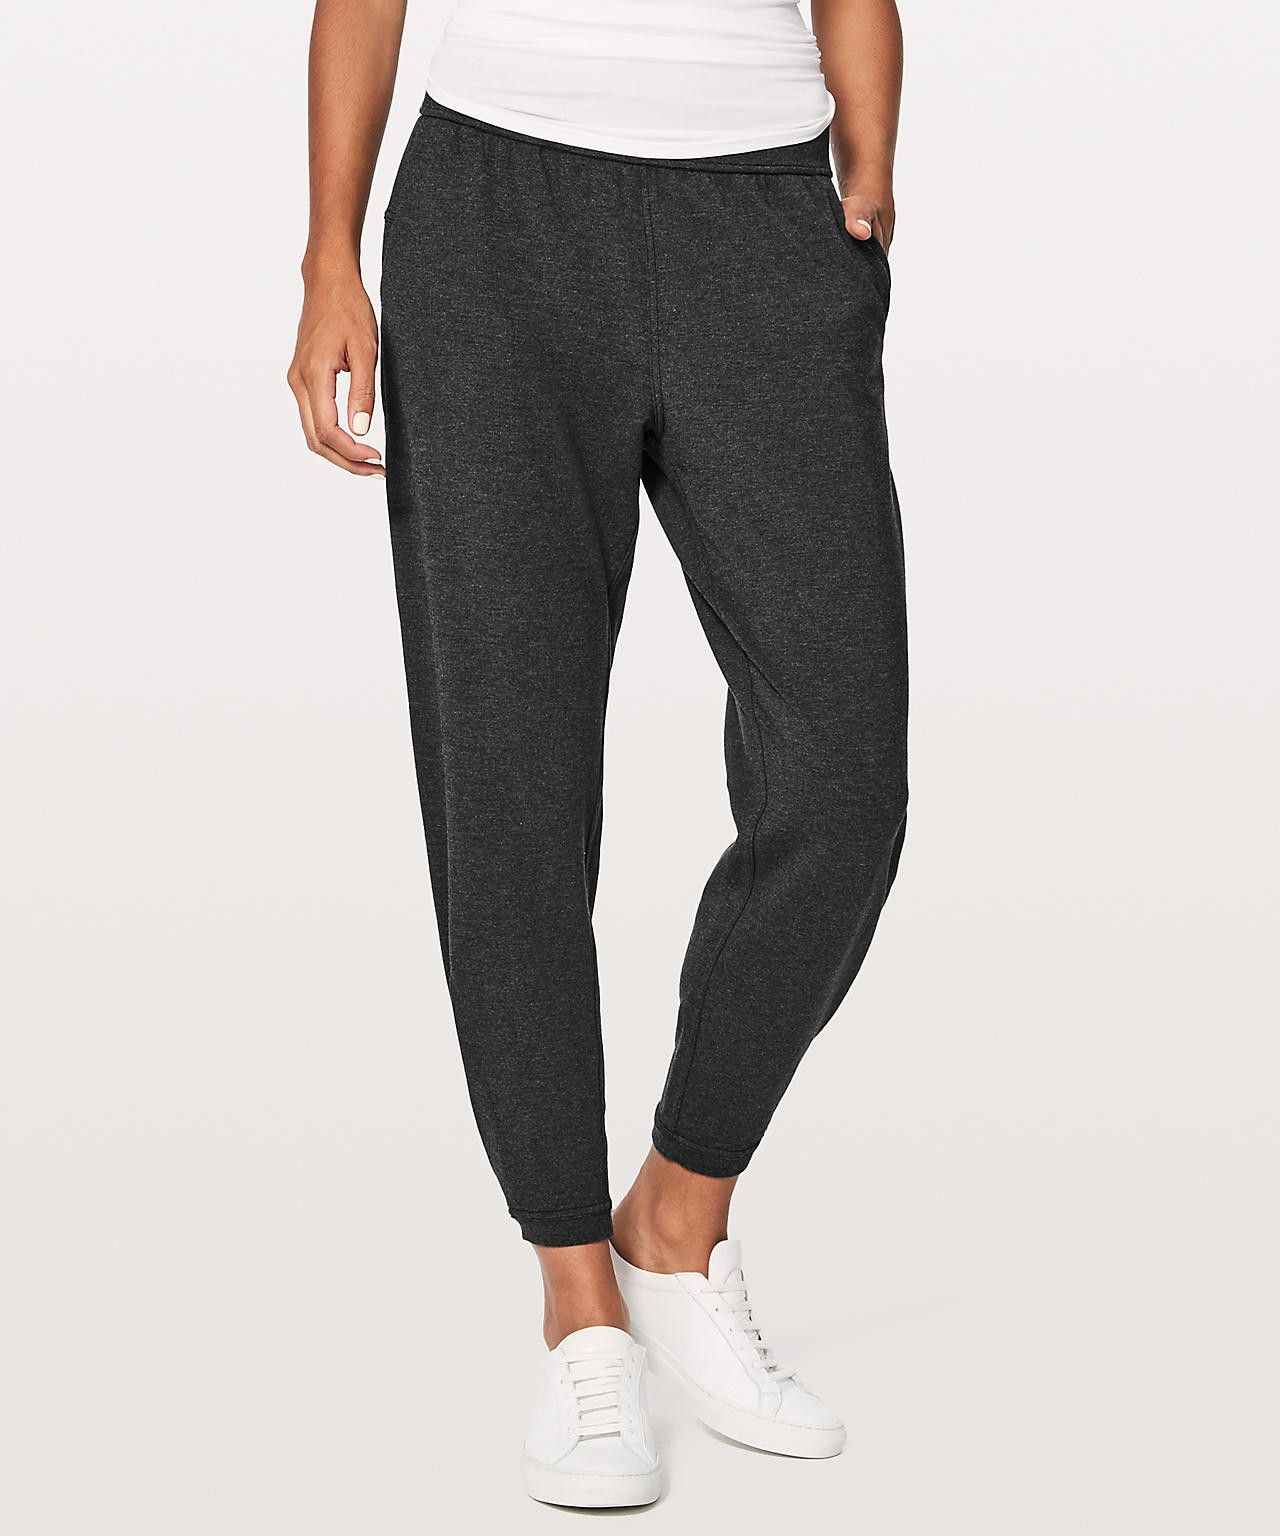 0e1525c8 Living in these right now. Lululemon Twist Tucked Pant | Loved it so ...